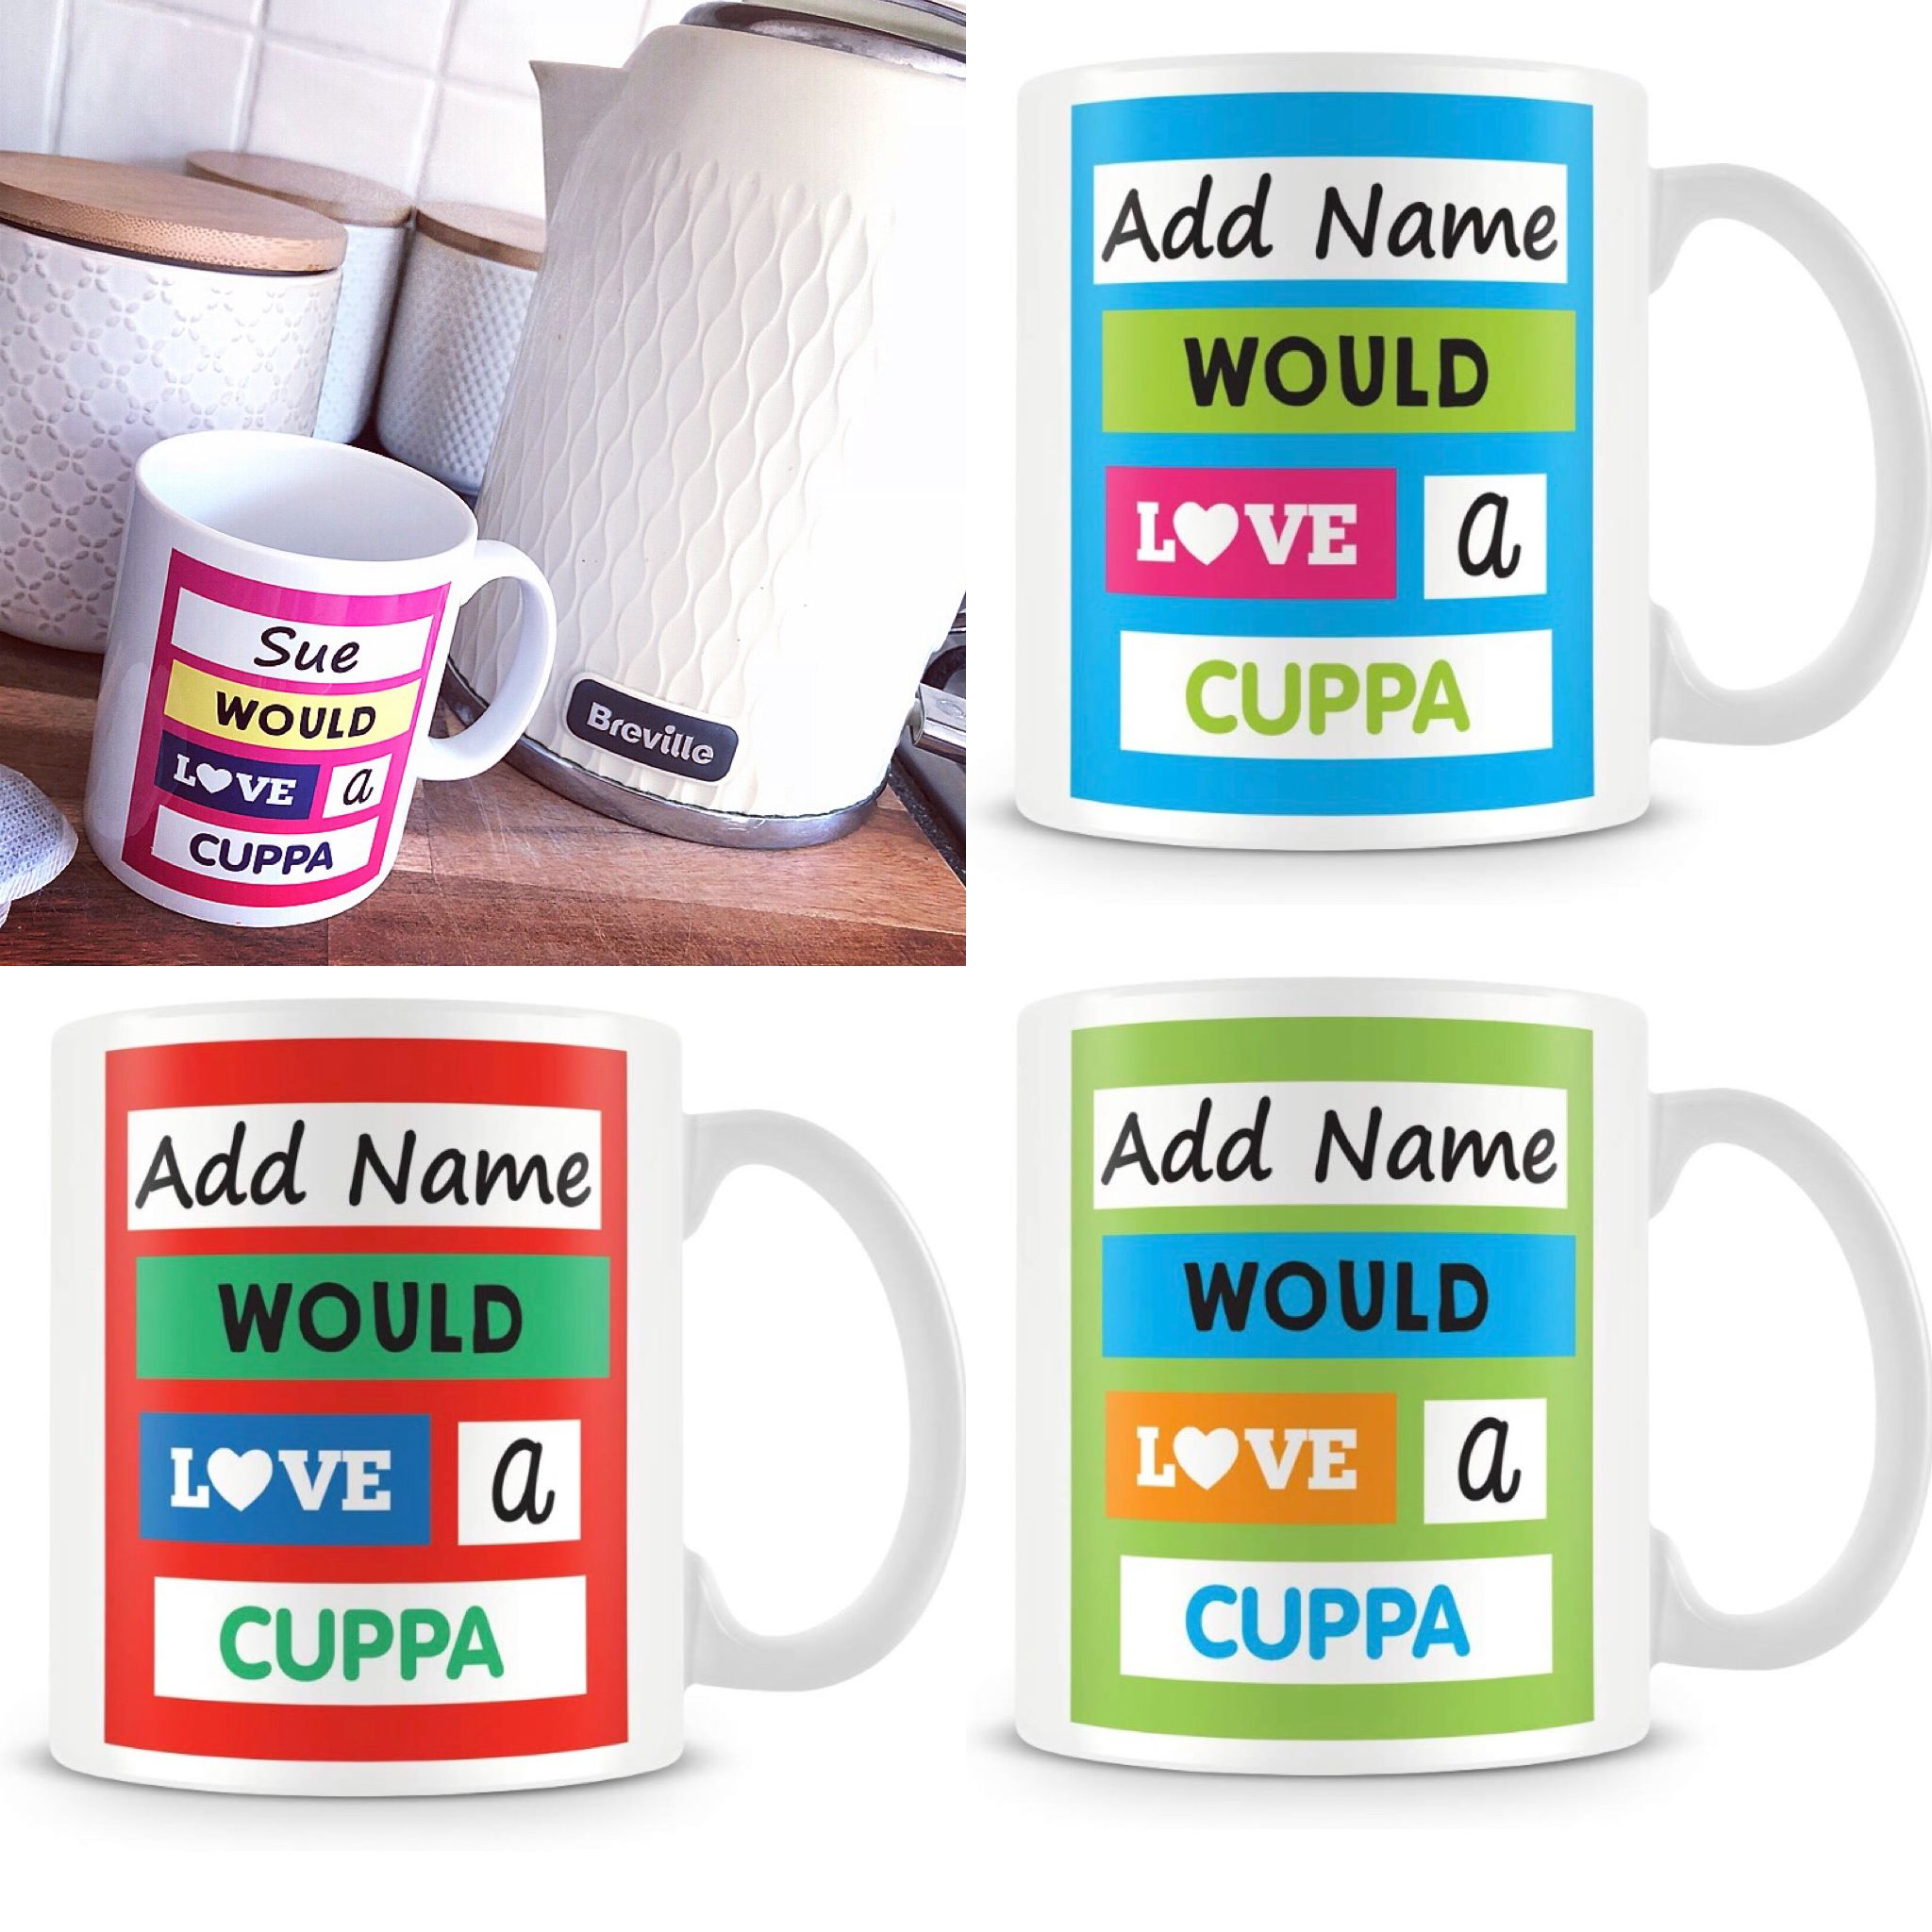 Don't you think that this is the perfect mug to let